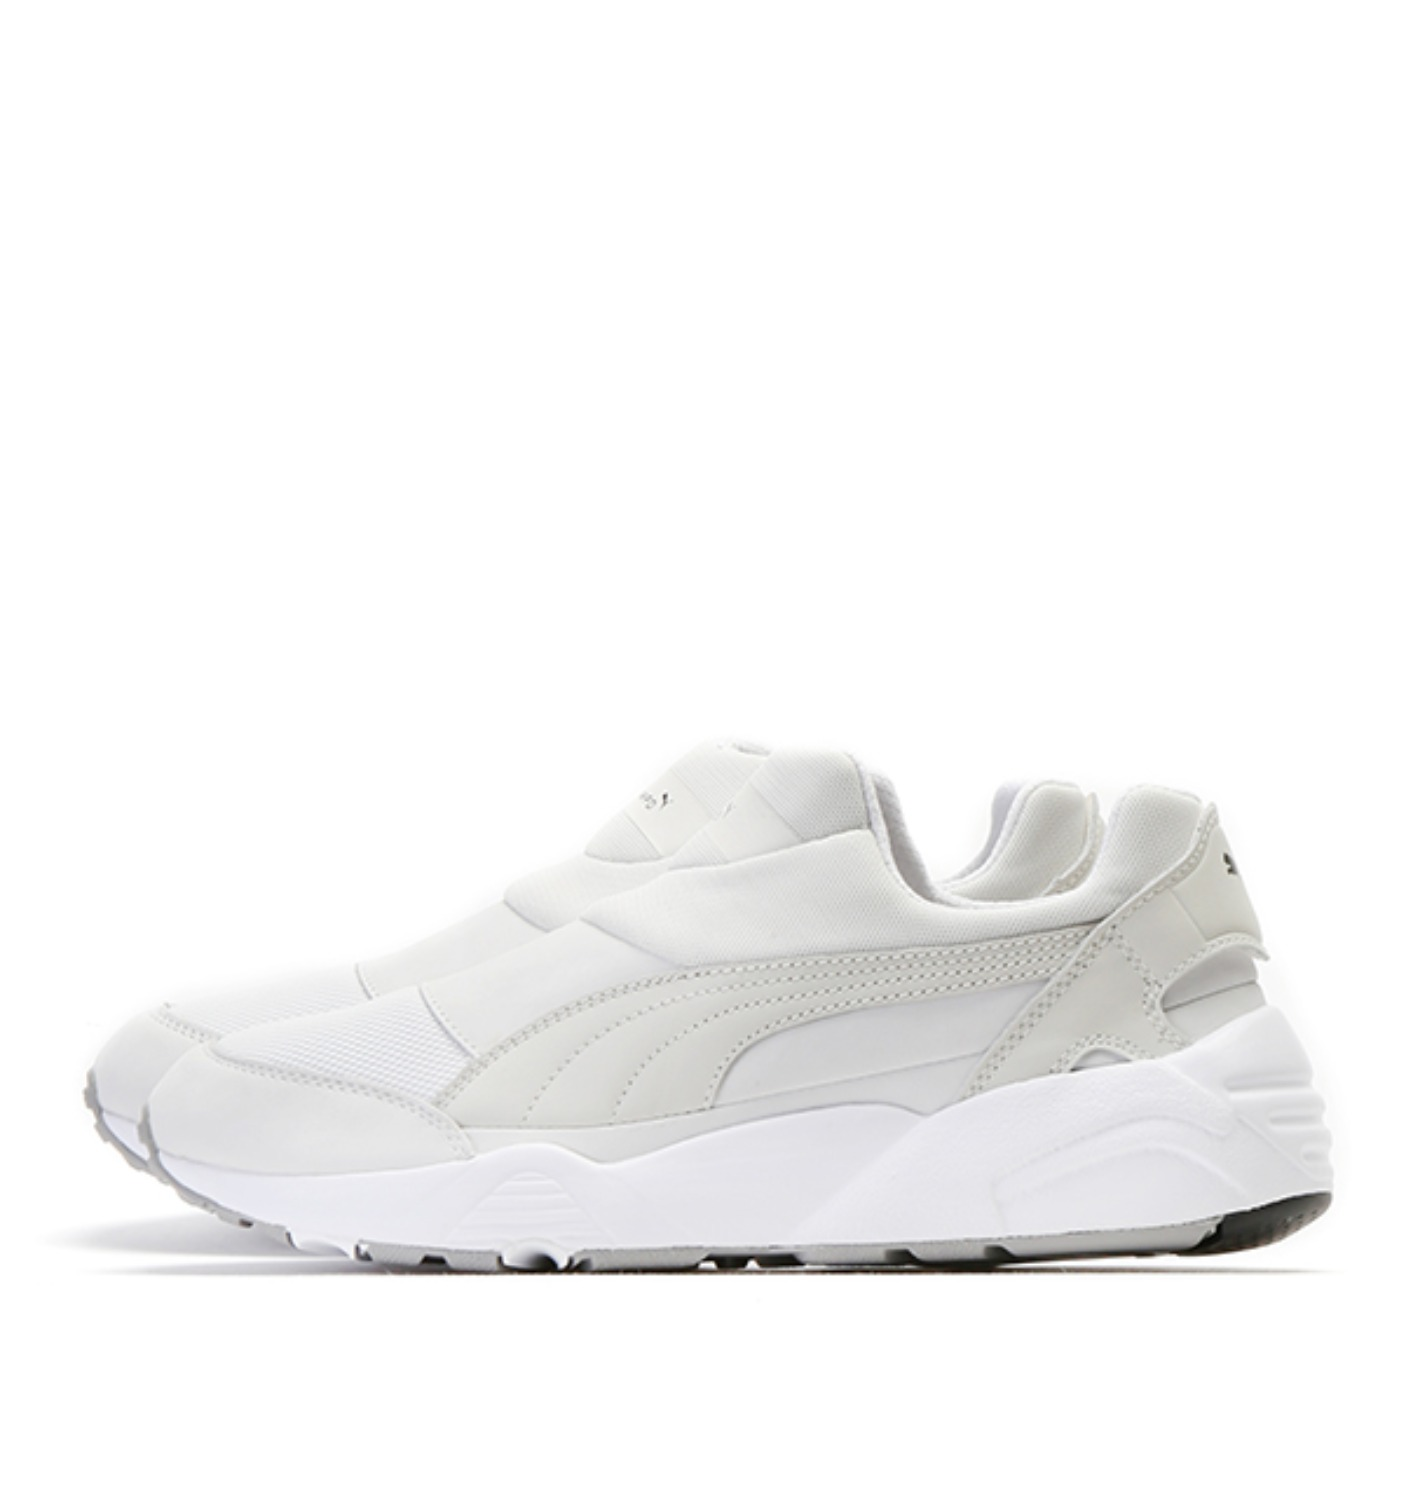 TRINOMIC SOCK NM X STAMPD WHITE